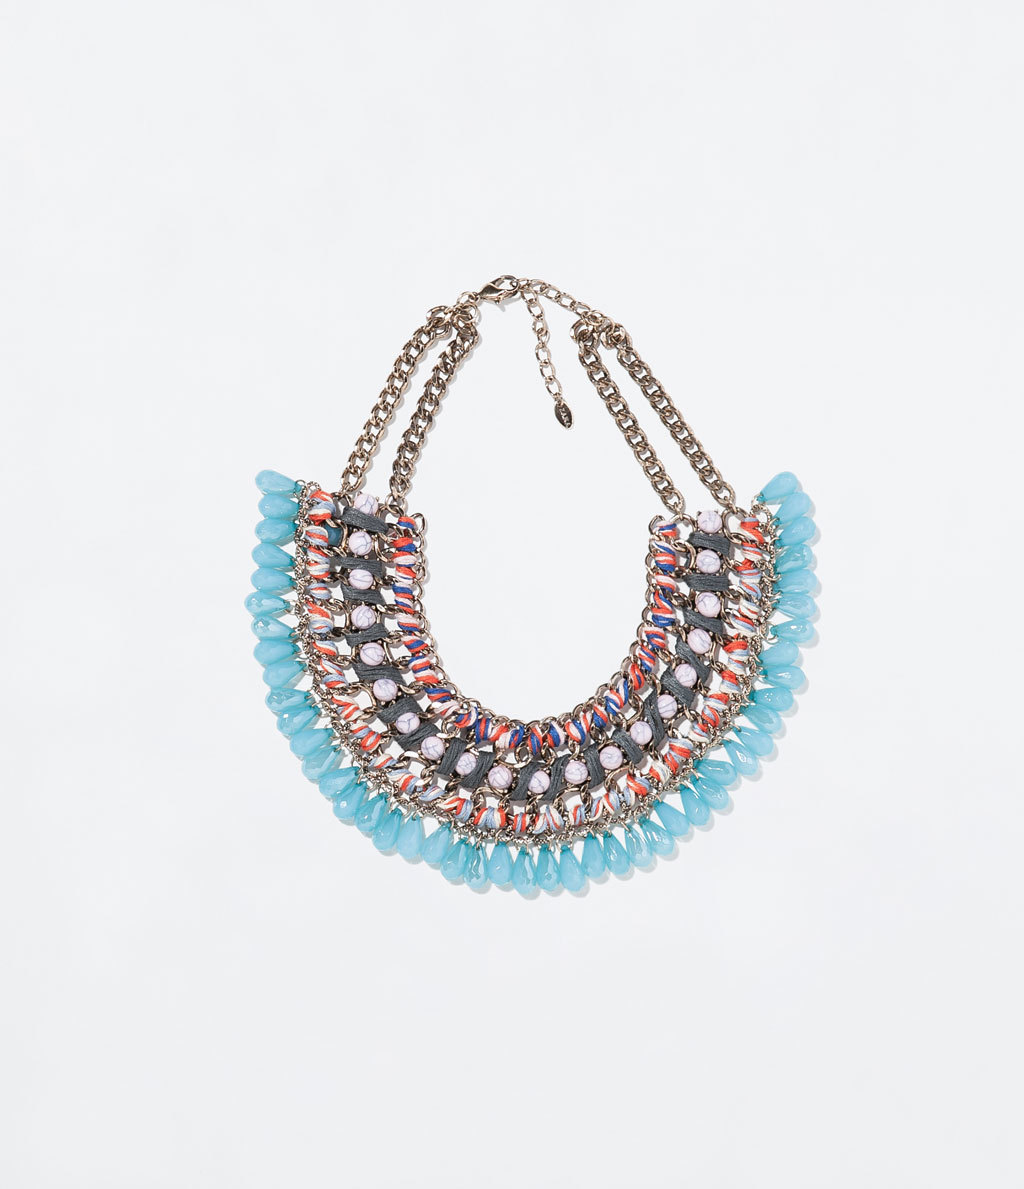 Diamante And Cord Necklace - occasions: evening, occasion; predominant colour: multicoloured; length: short; size: large/oversized; material: chain/metal; finish: plain; embellishment: beading; style: bib/statement; season: s/s 2014; multicoloured: multicoloured